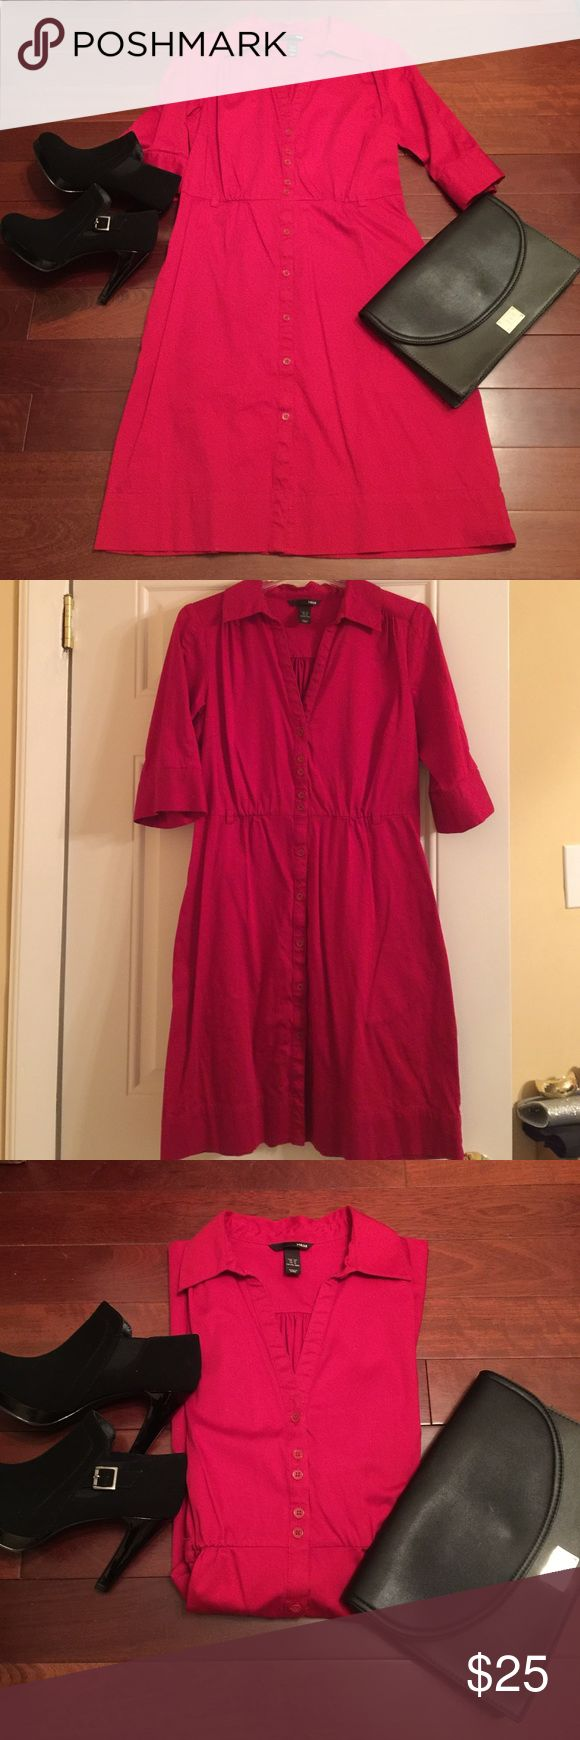 NWOT H&M Hot Red Dress! This deep red dress will pop whether you wear it to the office, a dinner date, or on the weekend! Half sleeves. Collar. Buttons down the front/center. Relaxed fit. Cinched waist. Has loops for a thin belt to give shape. It's new, never been worn, but without tags. In excellent condition. Great with heels, flats, booties, or boots! Multi use! H&M Dresses Long Sleeve